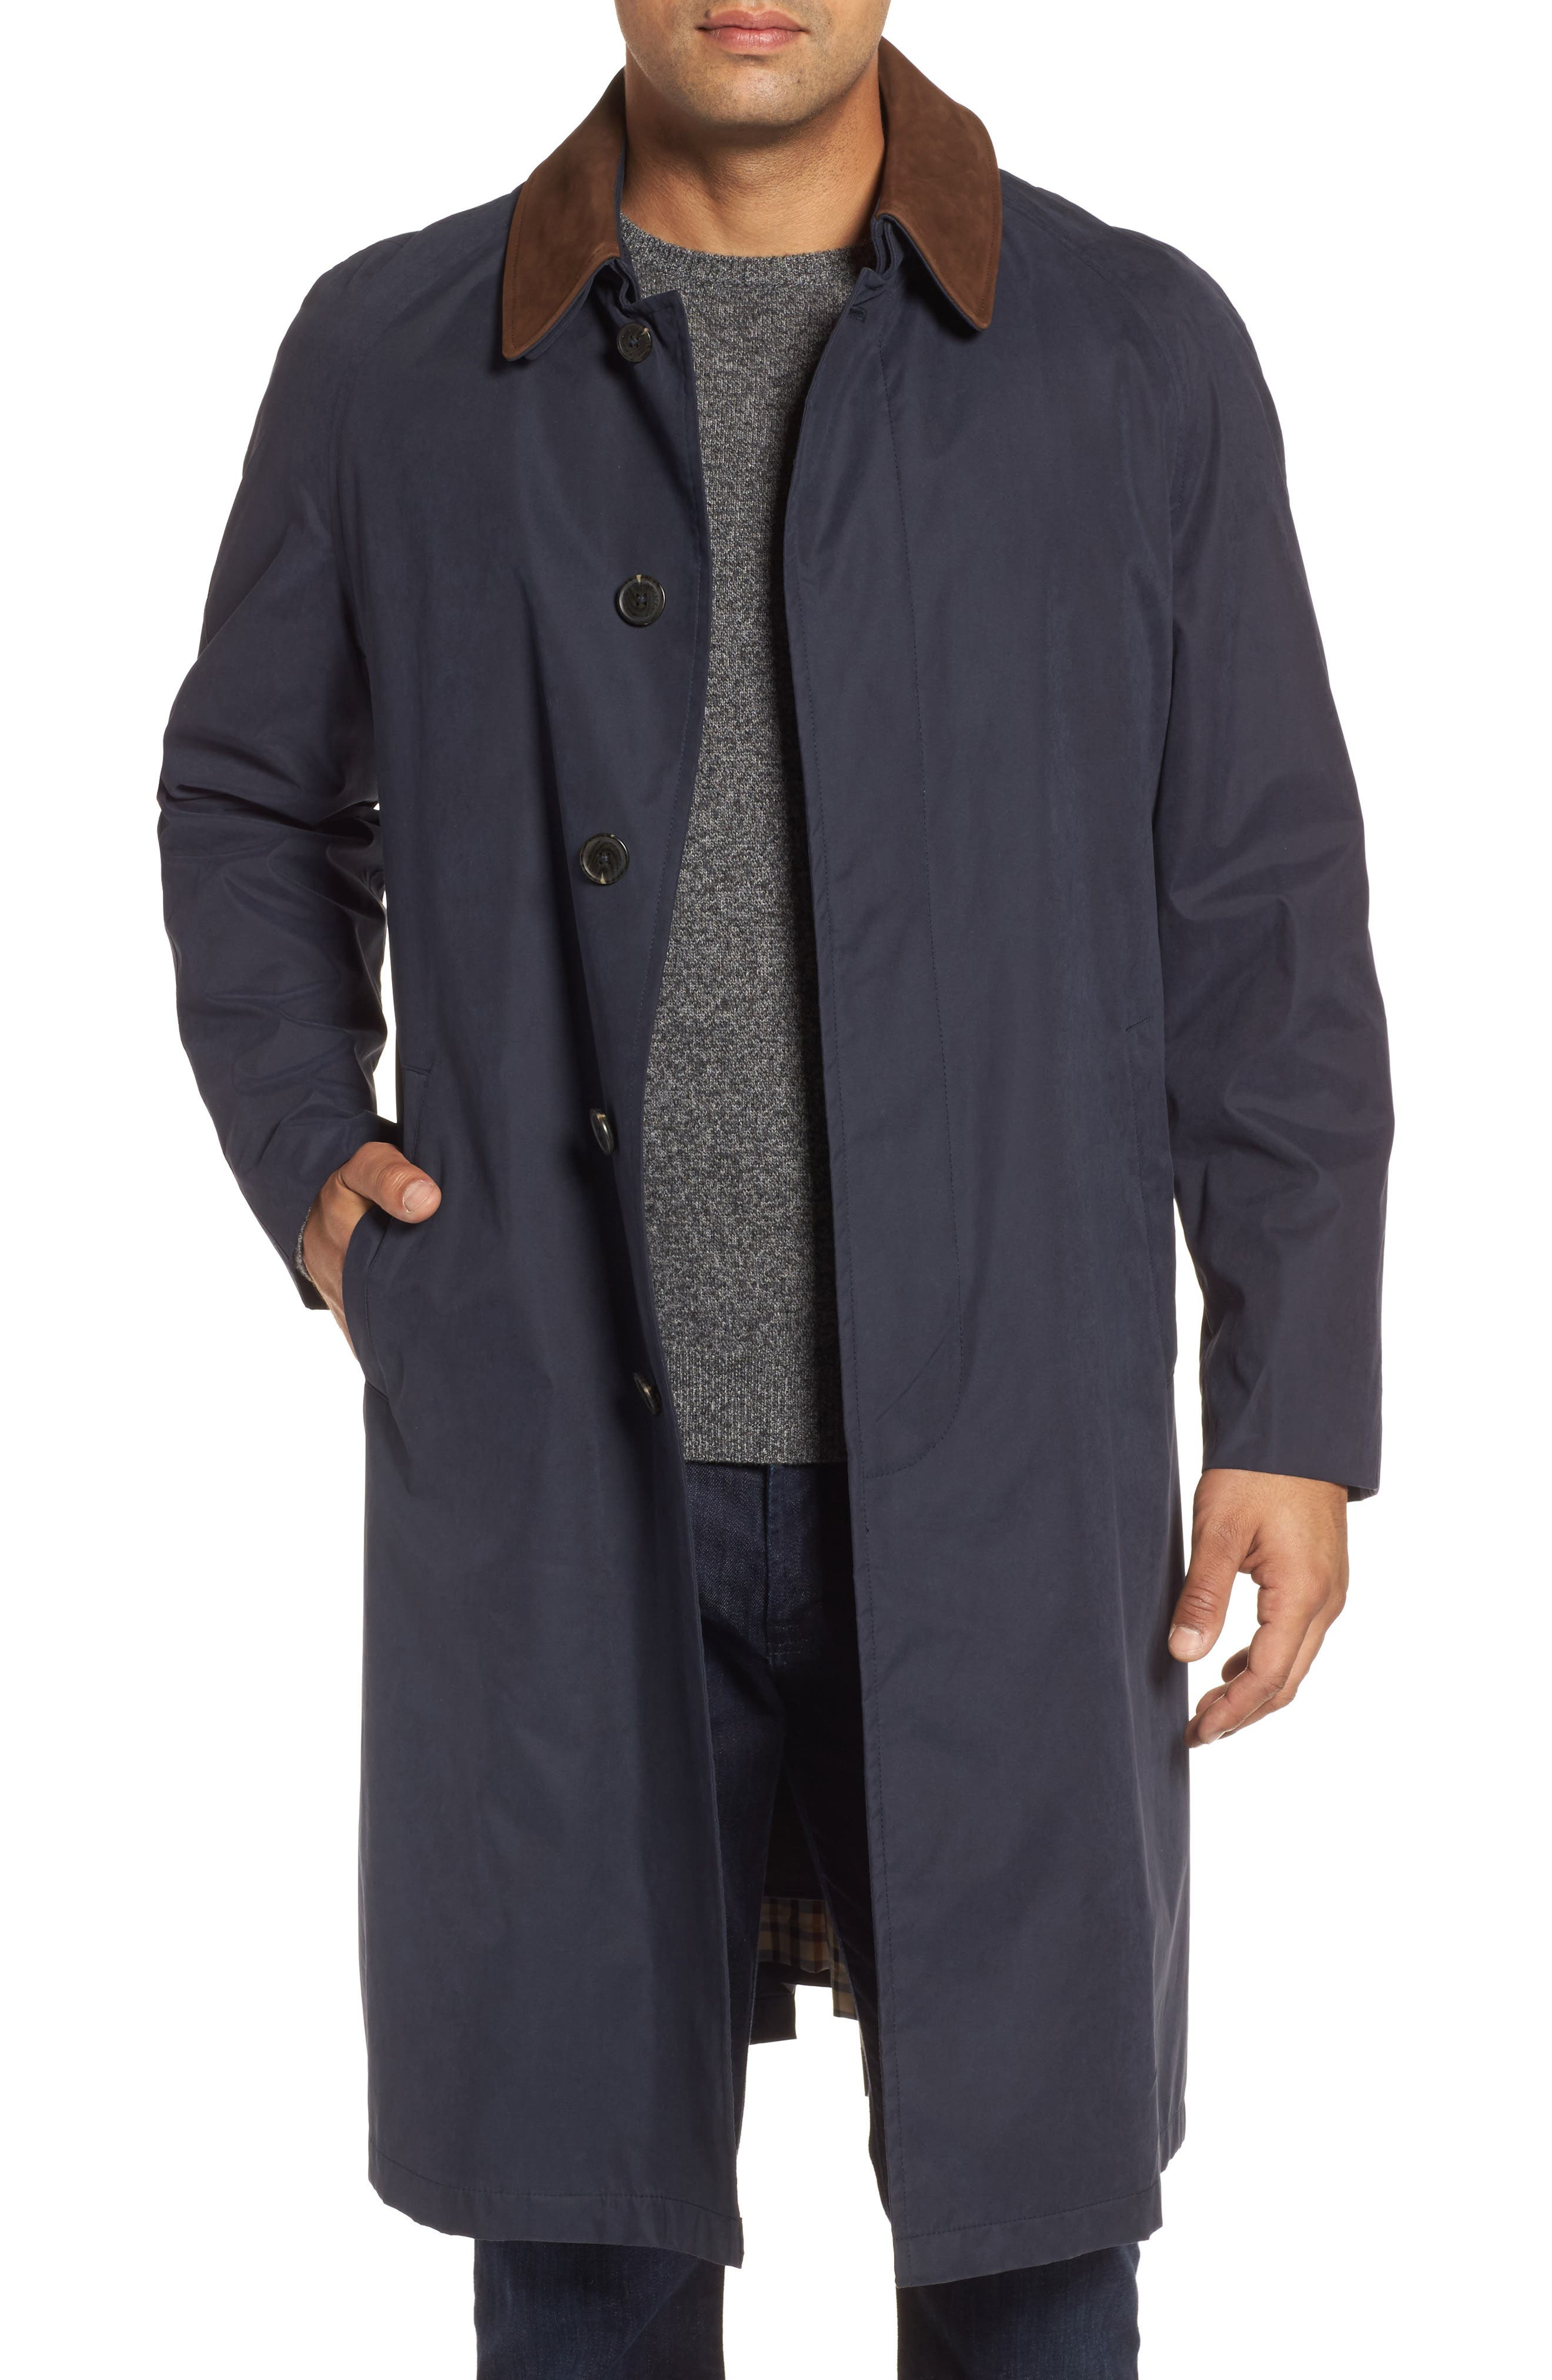 Lawrence Classic Fit Rain Coat,                         Main,                         color, Navy